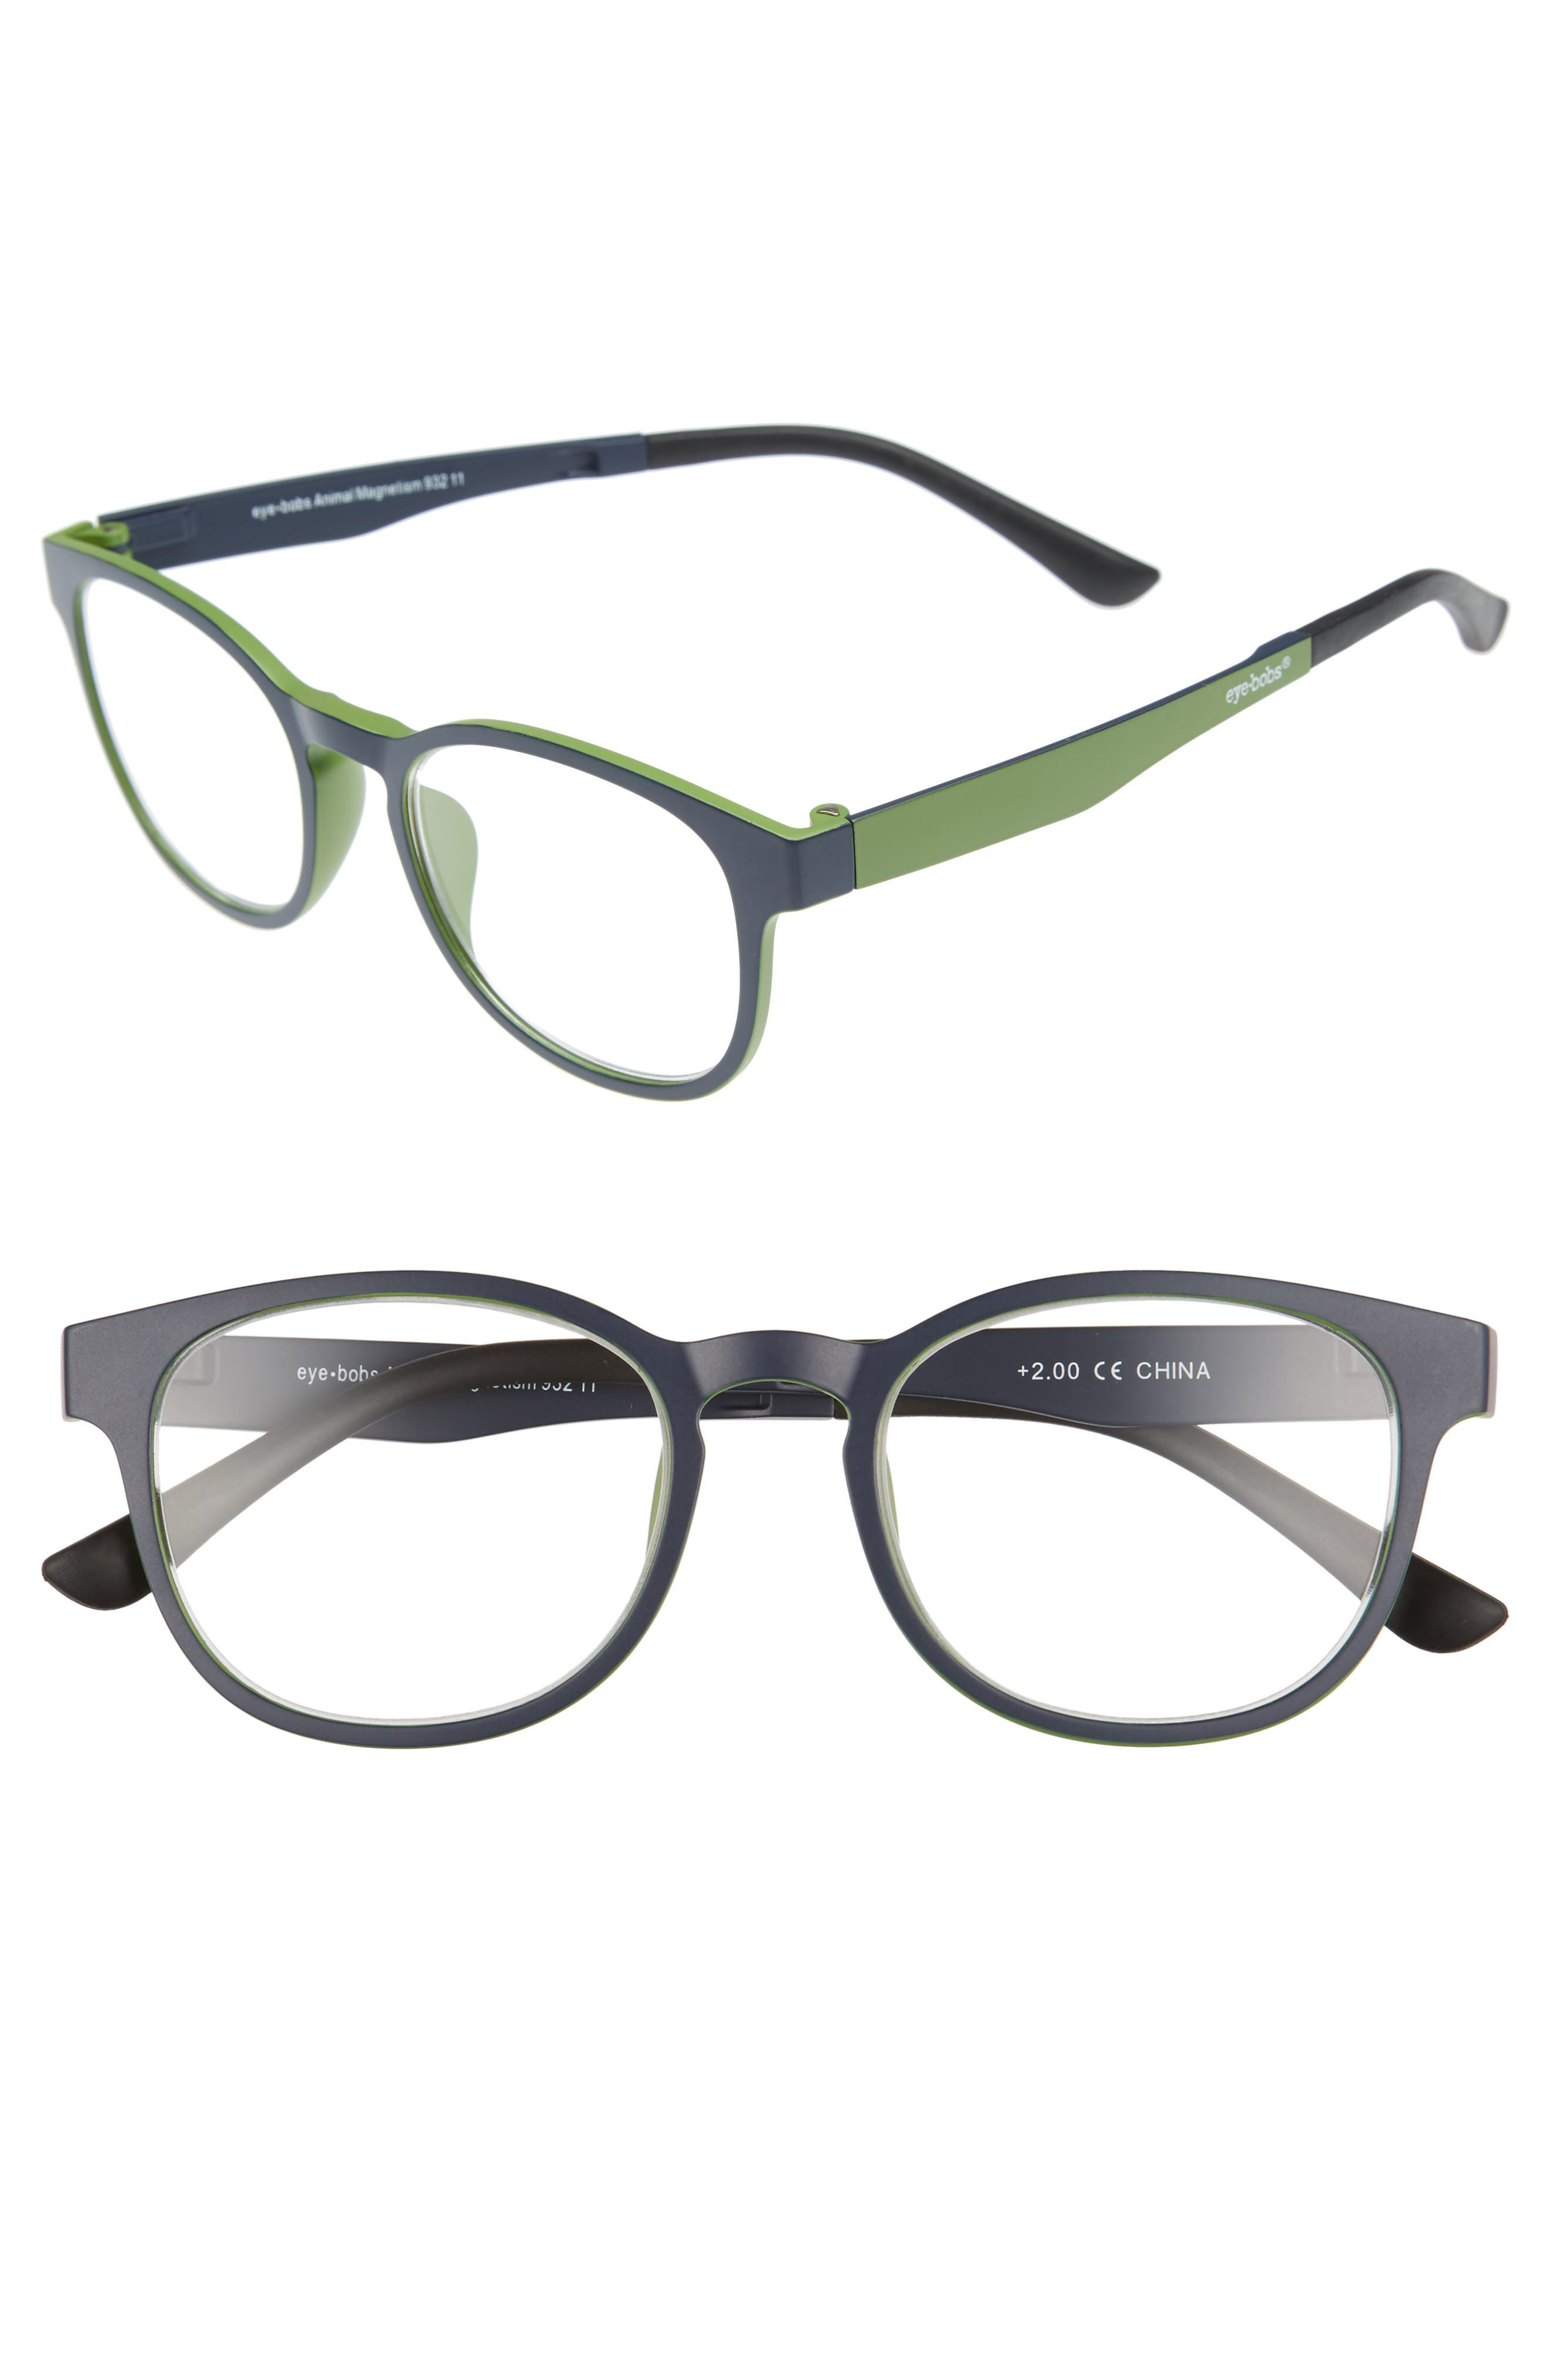 EYEBOBS Animal Magnetism 50Mm Reading Glasses With Sun Clip - Blue With Green